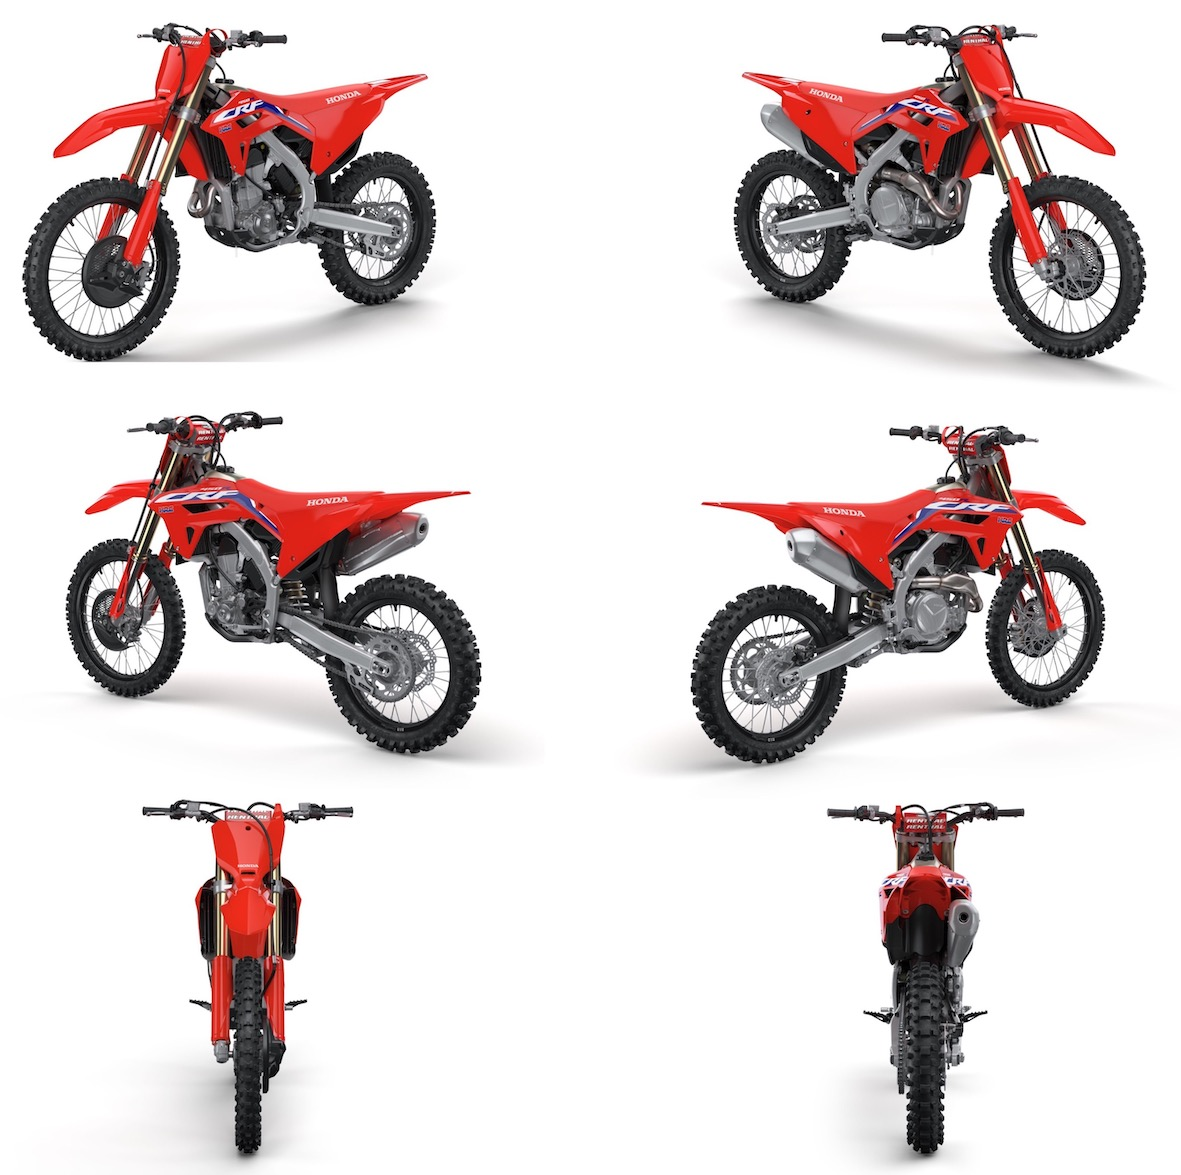 First look at the 2021 Honda CRF450R motocross bike